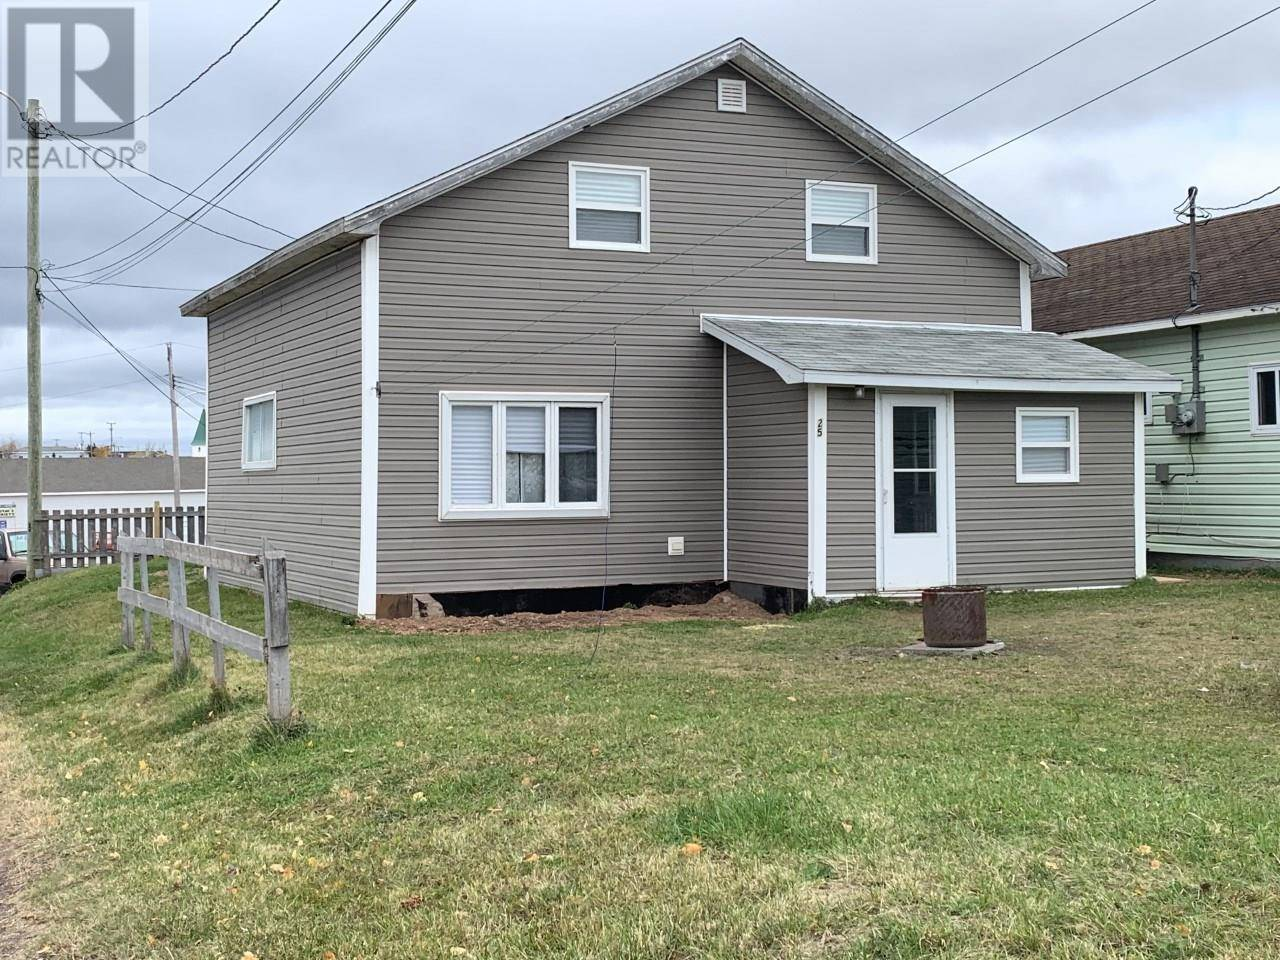 House for sale at 25 Circular Rd Botwood Newfoundland - MLS: 1205655